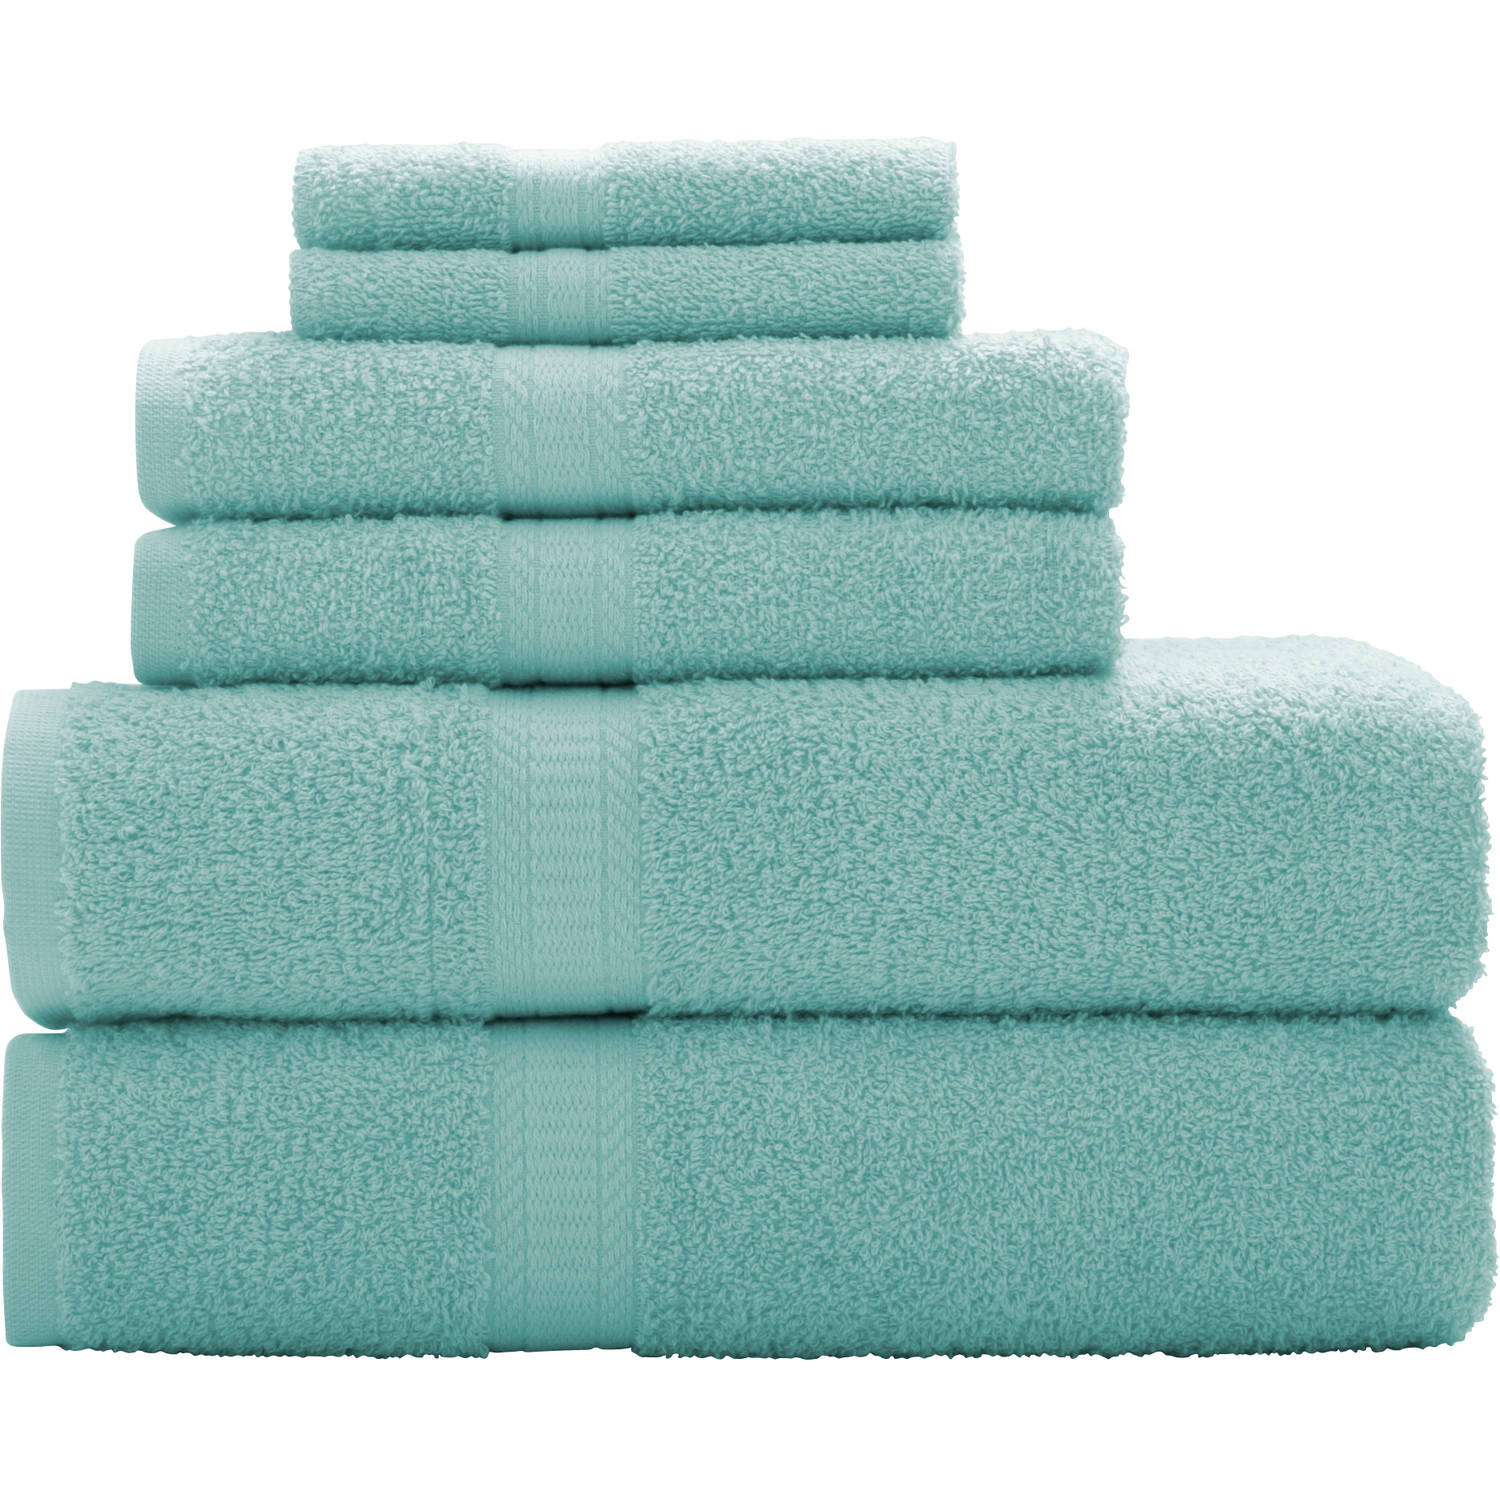 Hand Towels Bathroom: Mainstays 6-Piece Cotton Towel Collection Bath Towel Hand